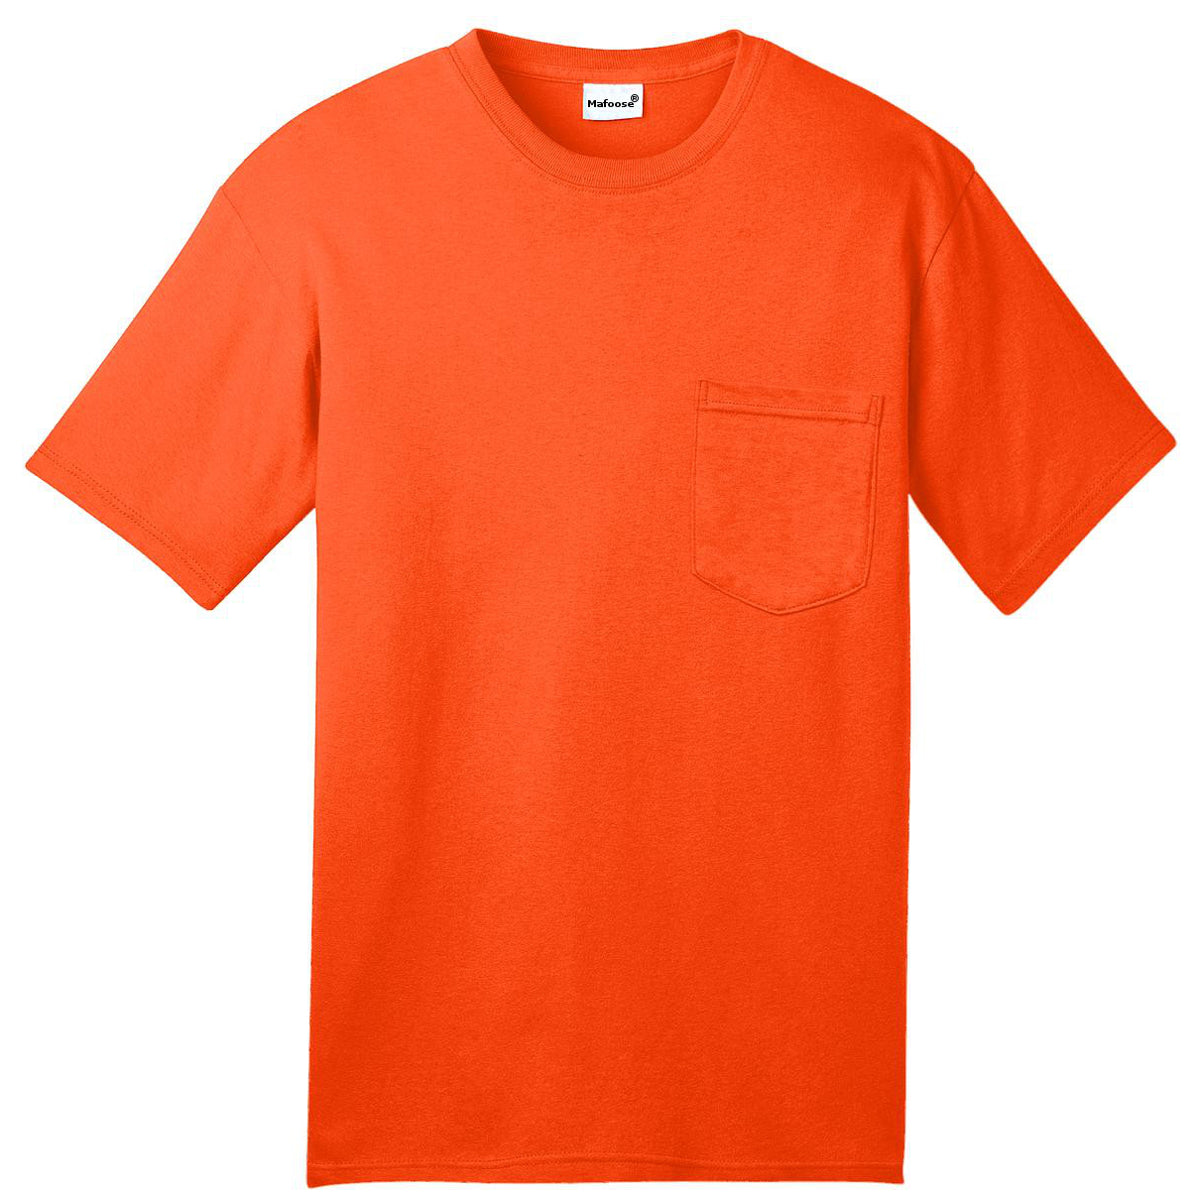 Mafoose Men's All American Tee Shirt with Pocket Safety Orange-Front